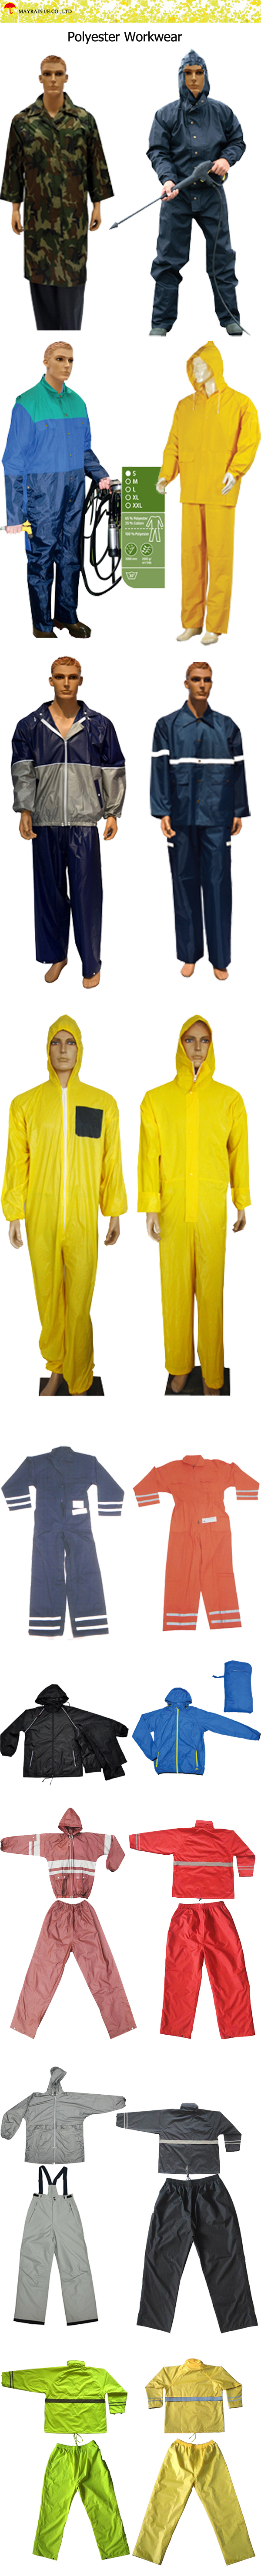 Polyester Workwear